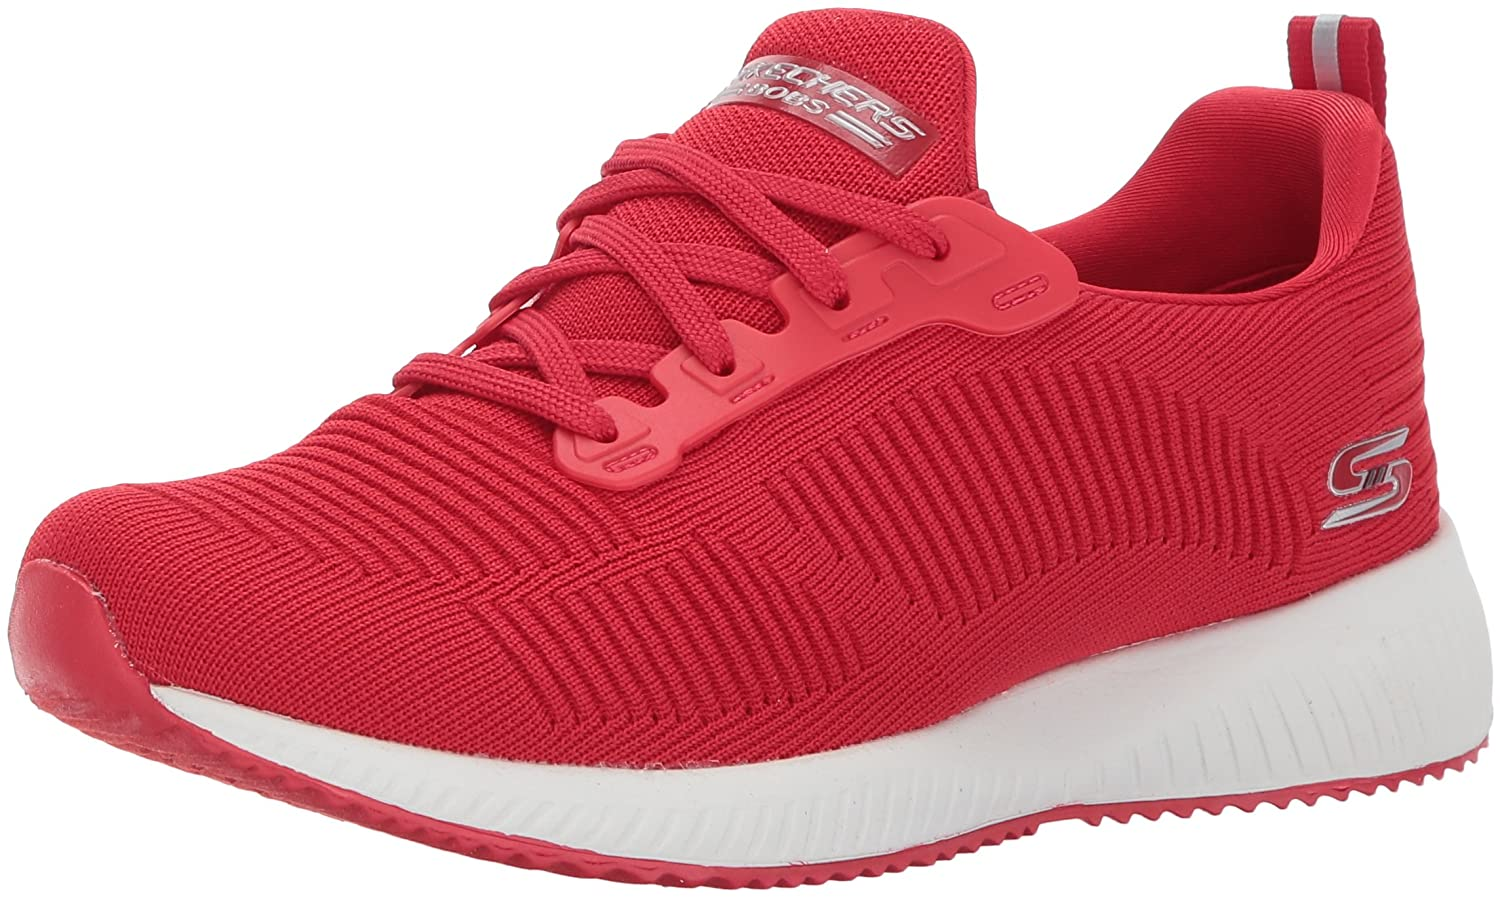 Skechers BOBS from Women's Bobs Squad-Photo Frame Sneaker B073ZVVS8S 10 B(M) US|Red